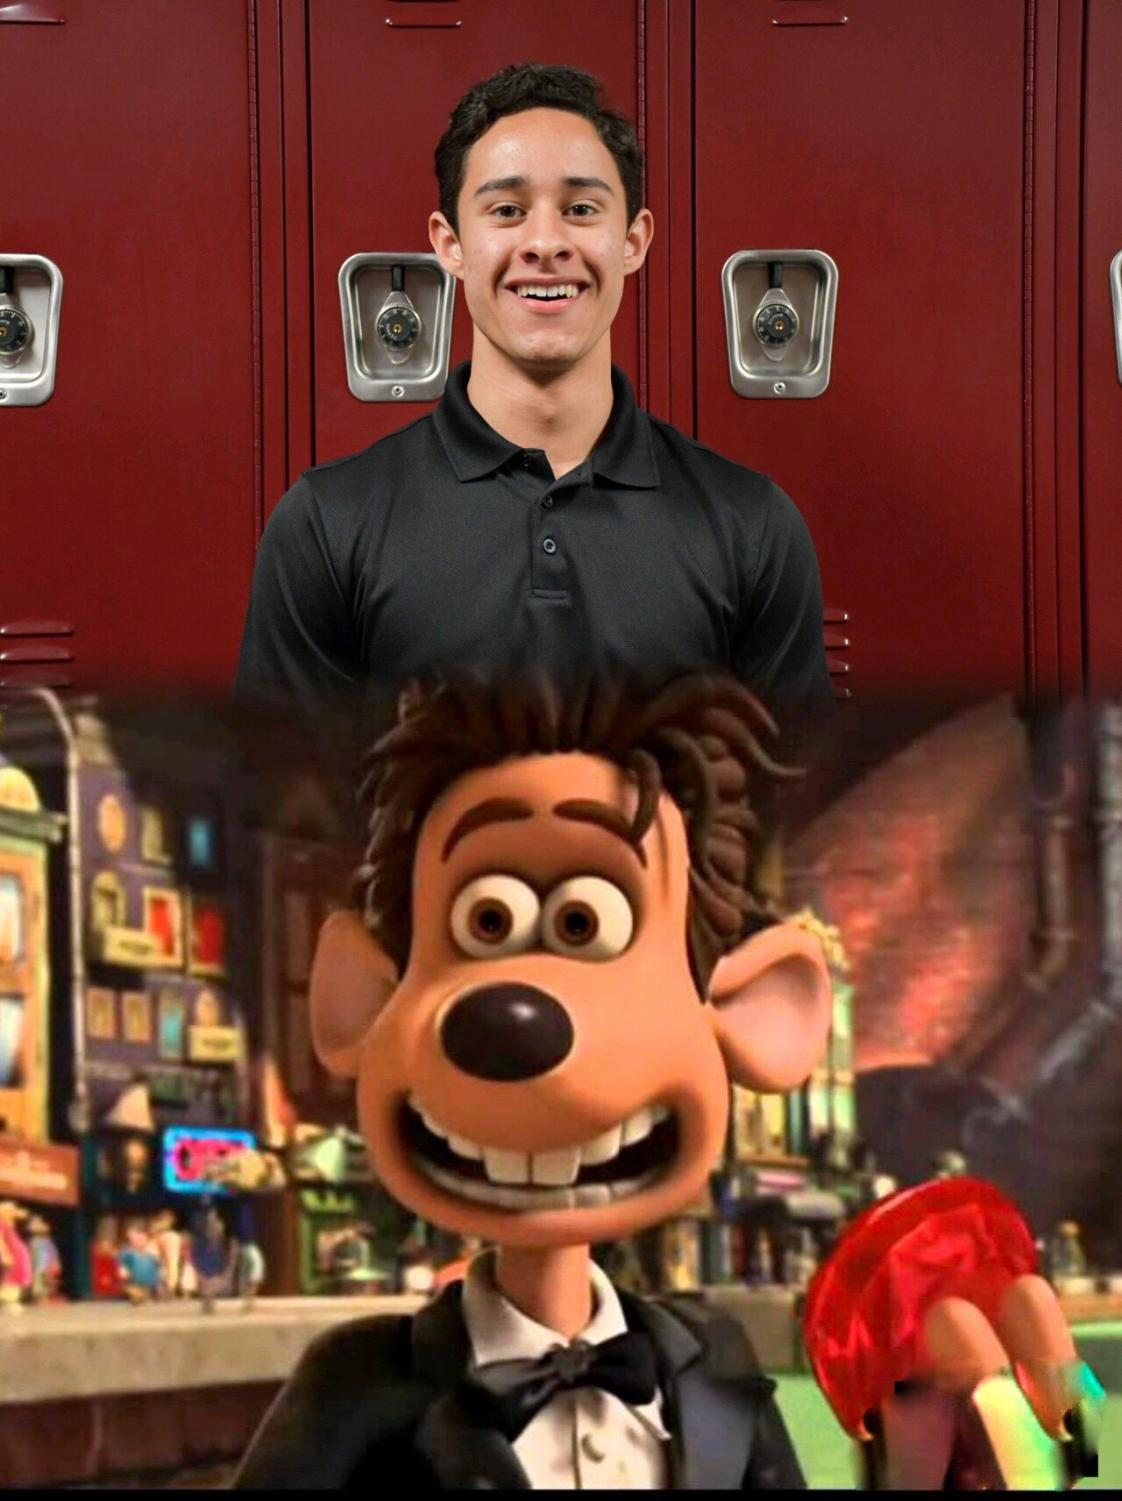 Kevin Kraemer  as Roddy from the movie Flushed Away